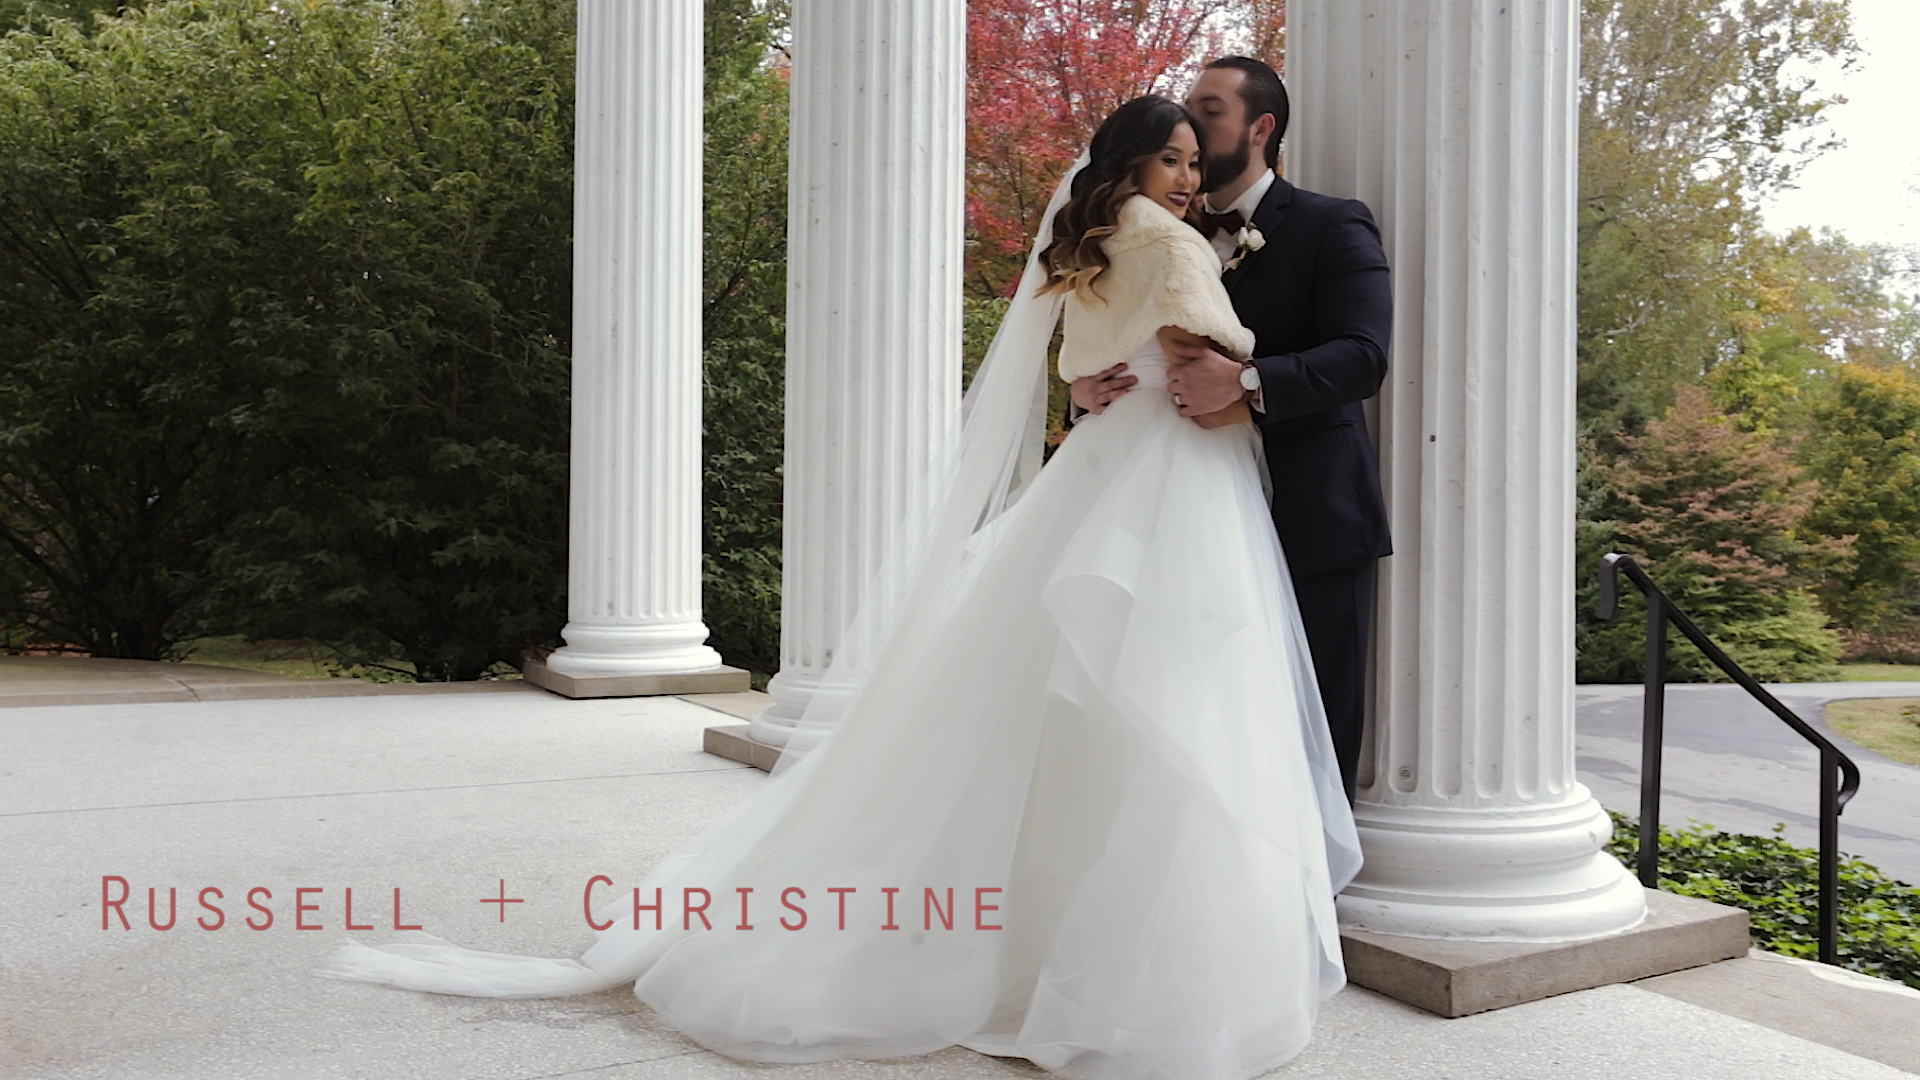 Russell + Christine | Louisville, Kentucky | Whitehall House & Gardens